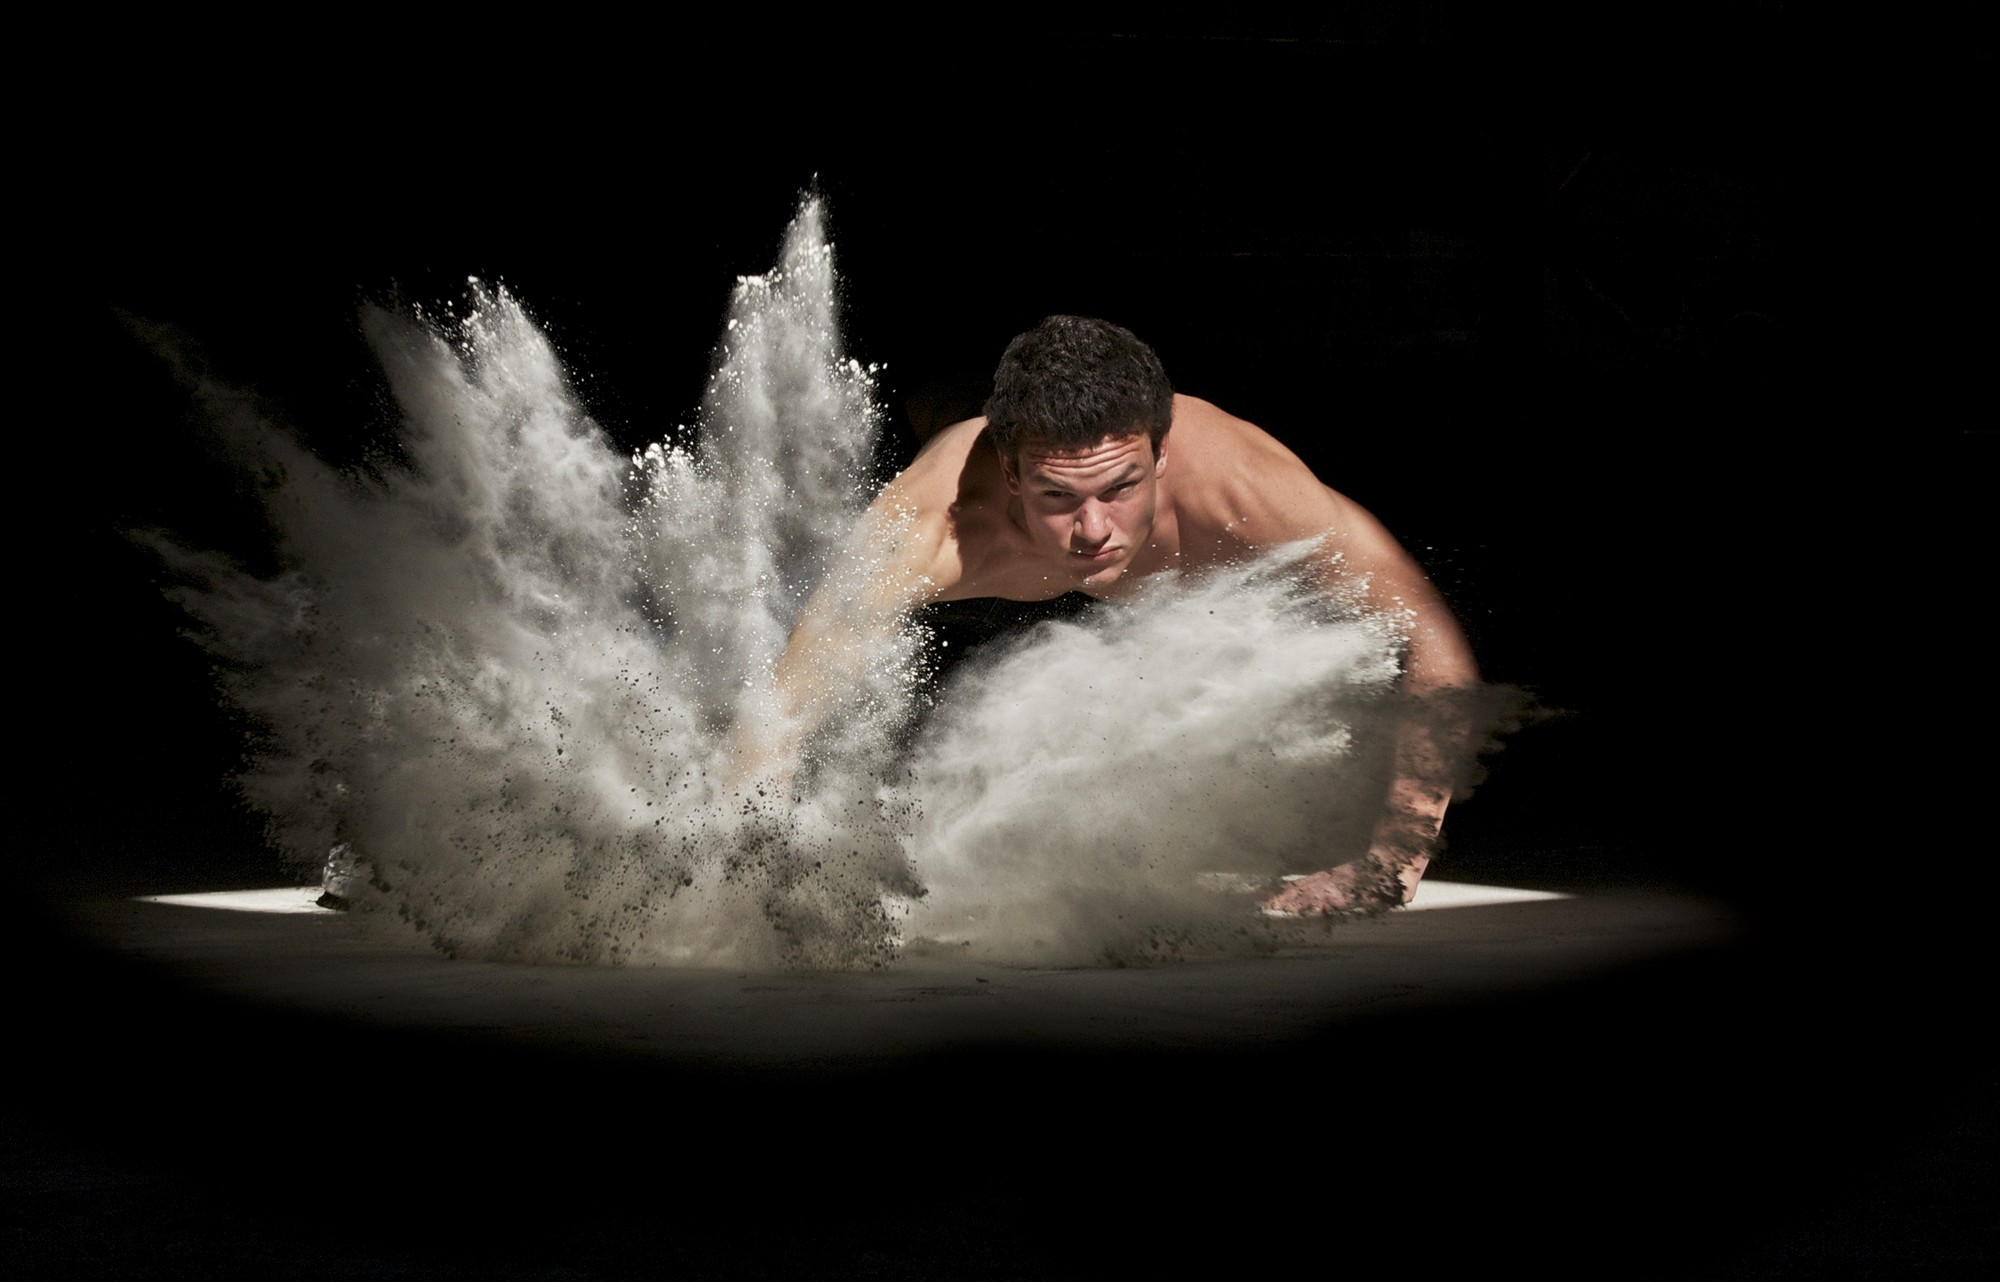 A martial arts fighter stomping the powder on the ground